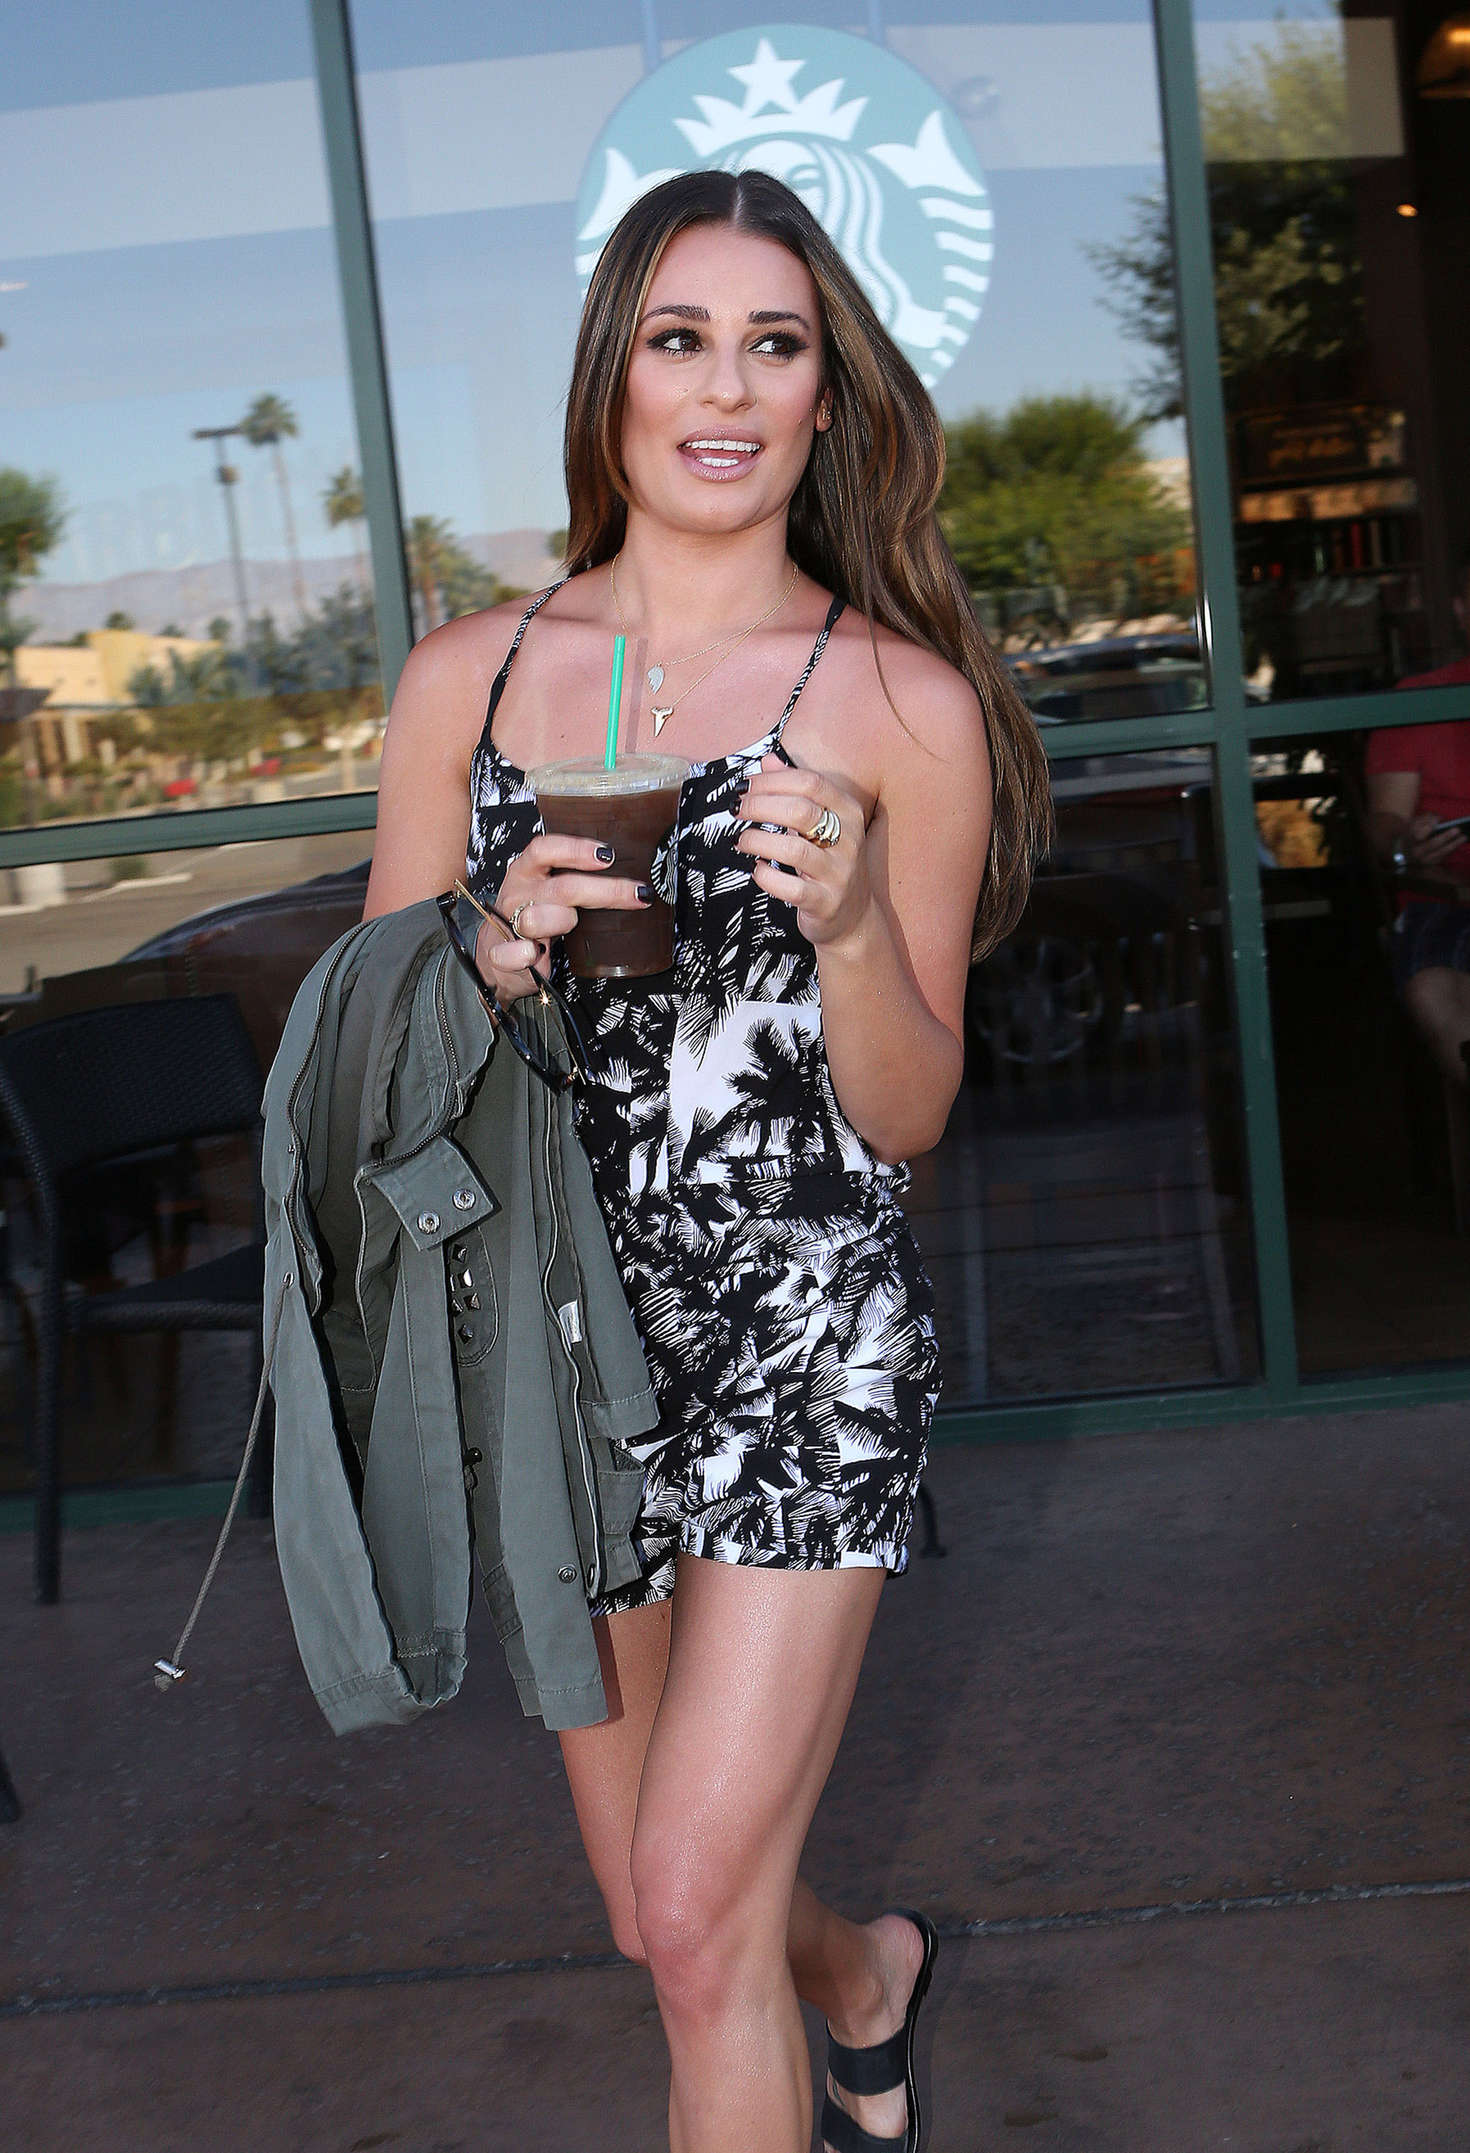 image Lea michele in short dress with epic cleavage